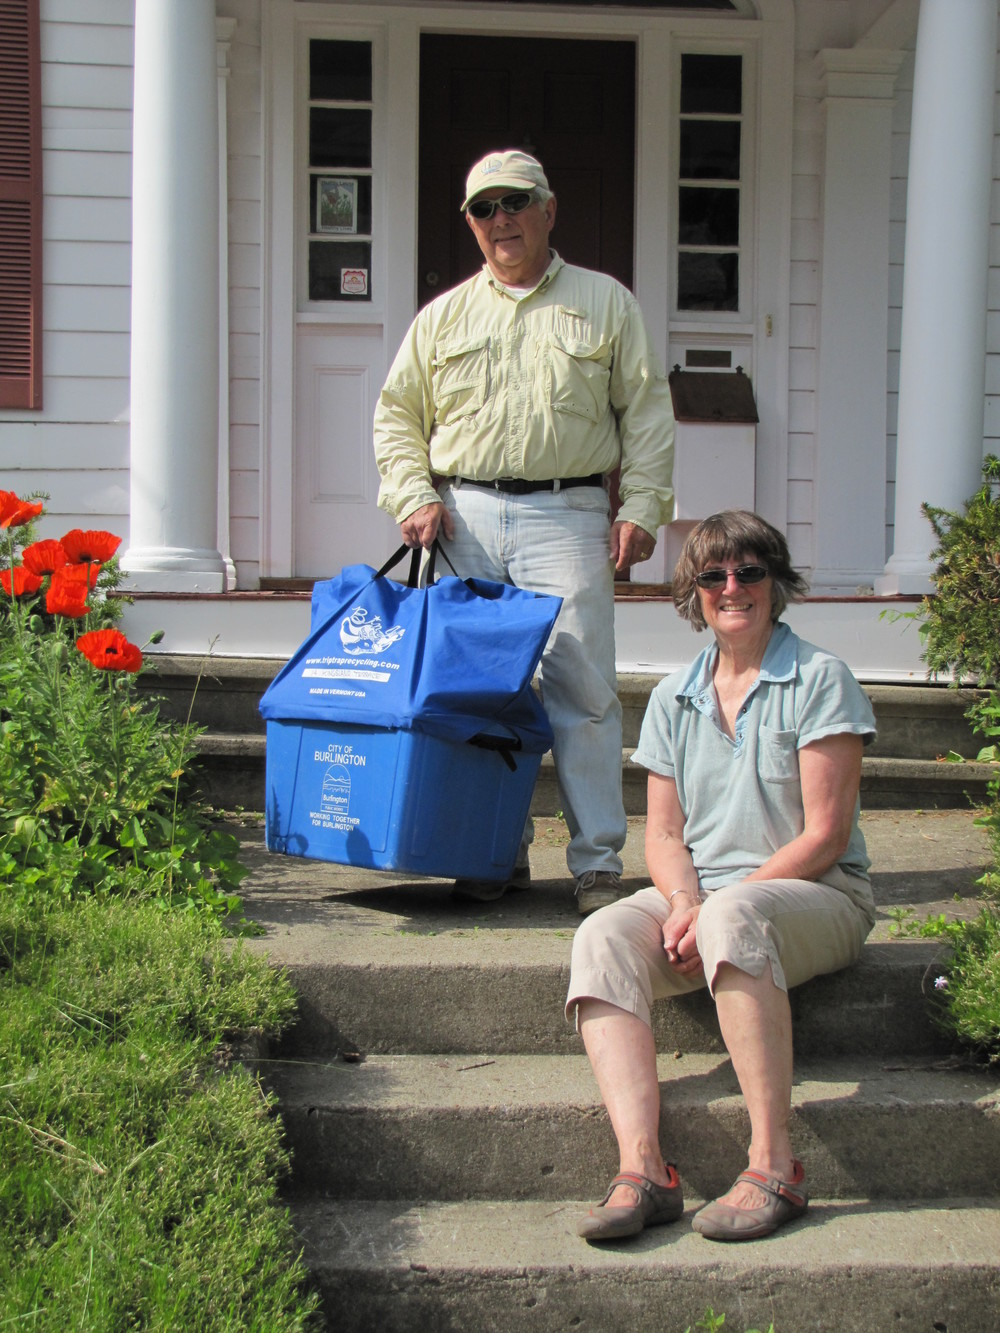 """ I heartily endorse using the bin genie.  I think it should be mandatory for all recycling customers using the small blue bins."" -jerry manock, senior product design engineer, burlington, vermont"